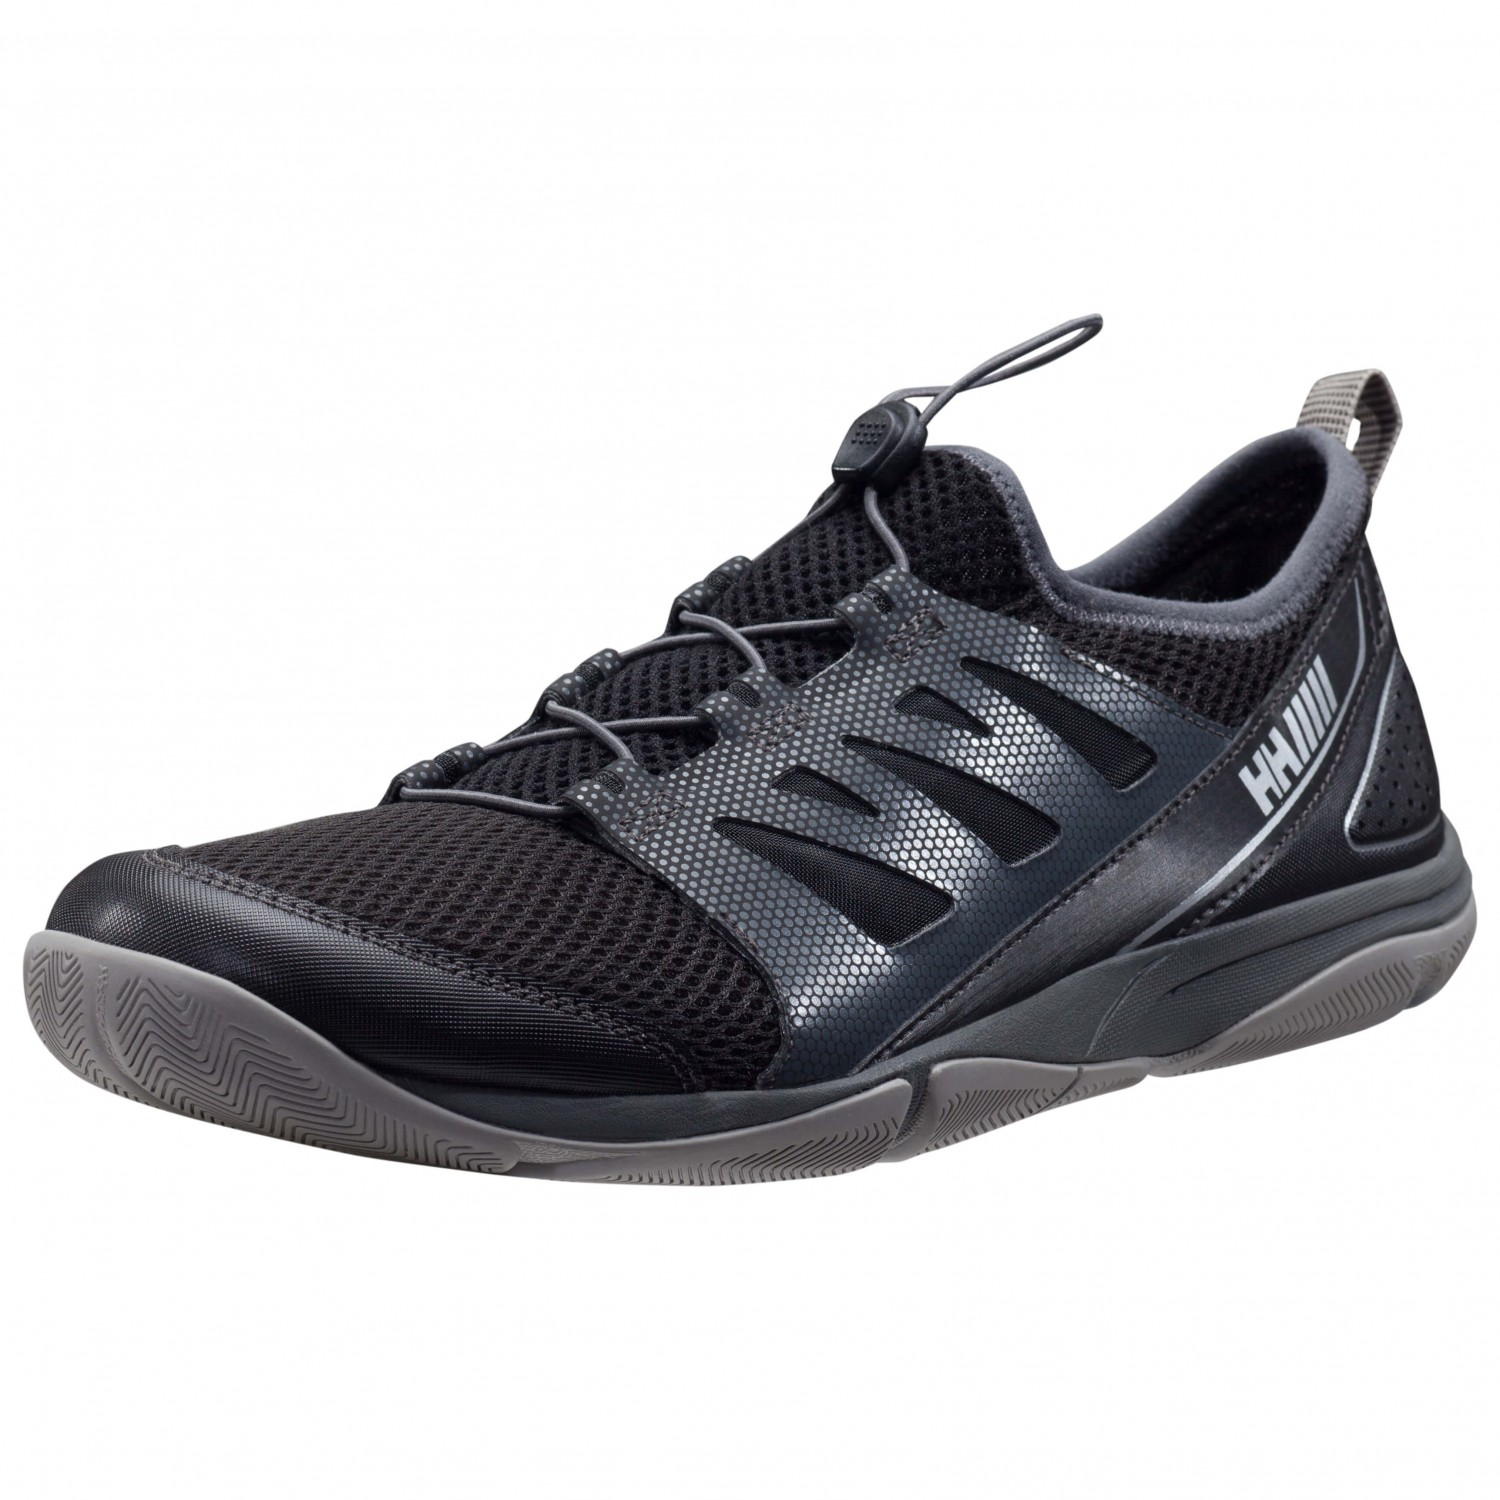 Helly Hansen - Aquapace 2 - Wassersportschuhe Jet Black / Charcoal / Silver / New Light Grey